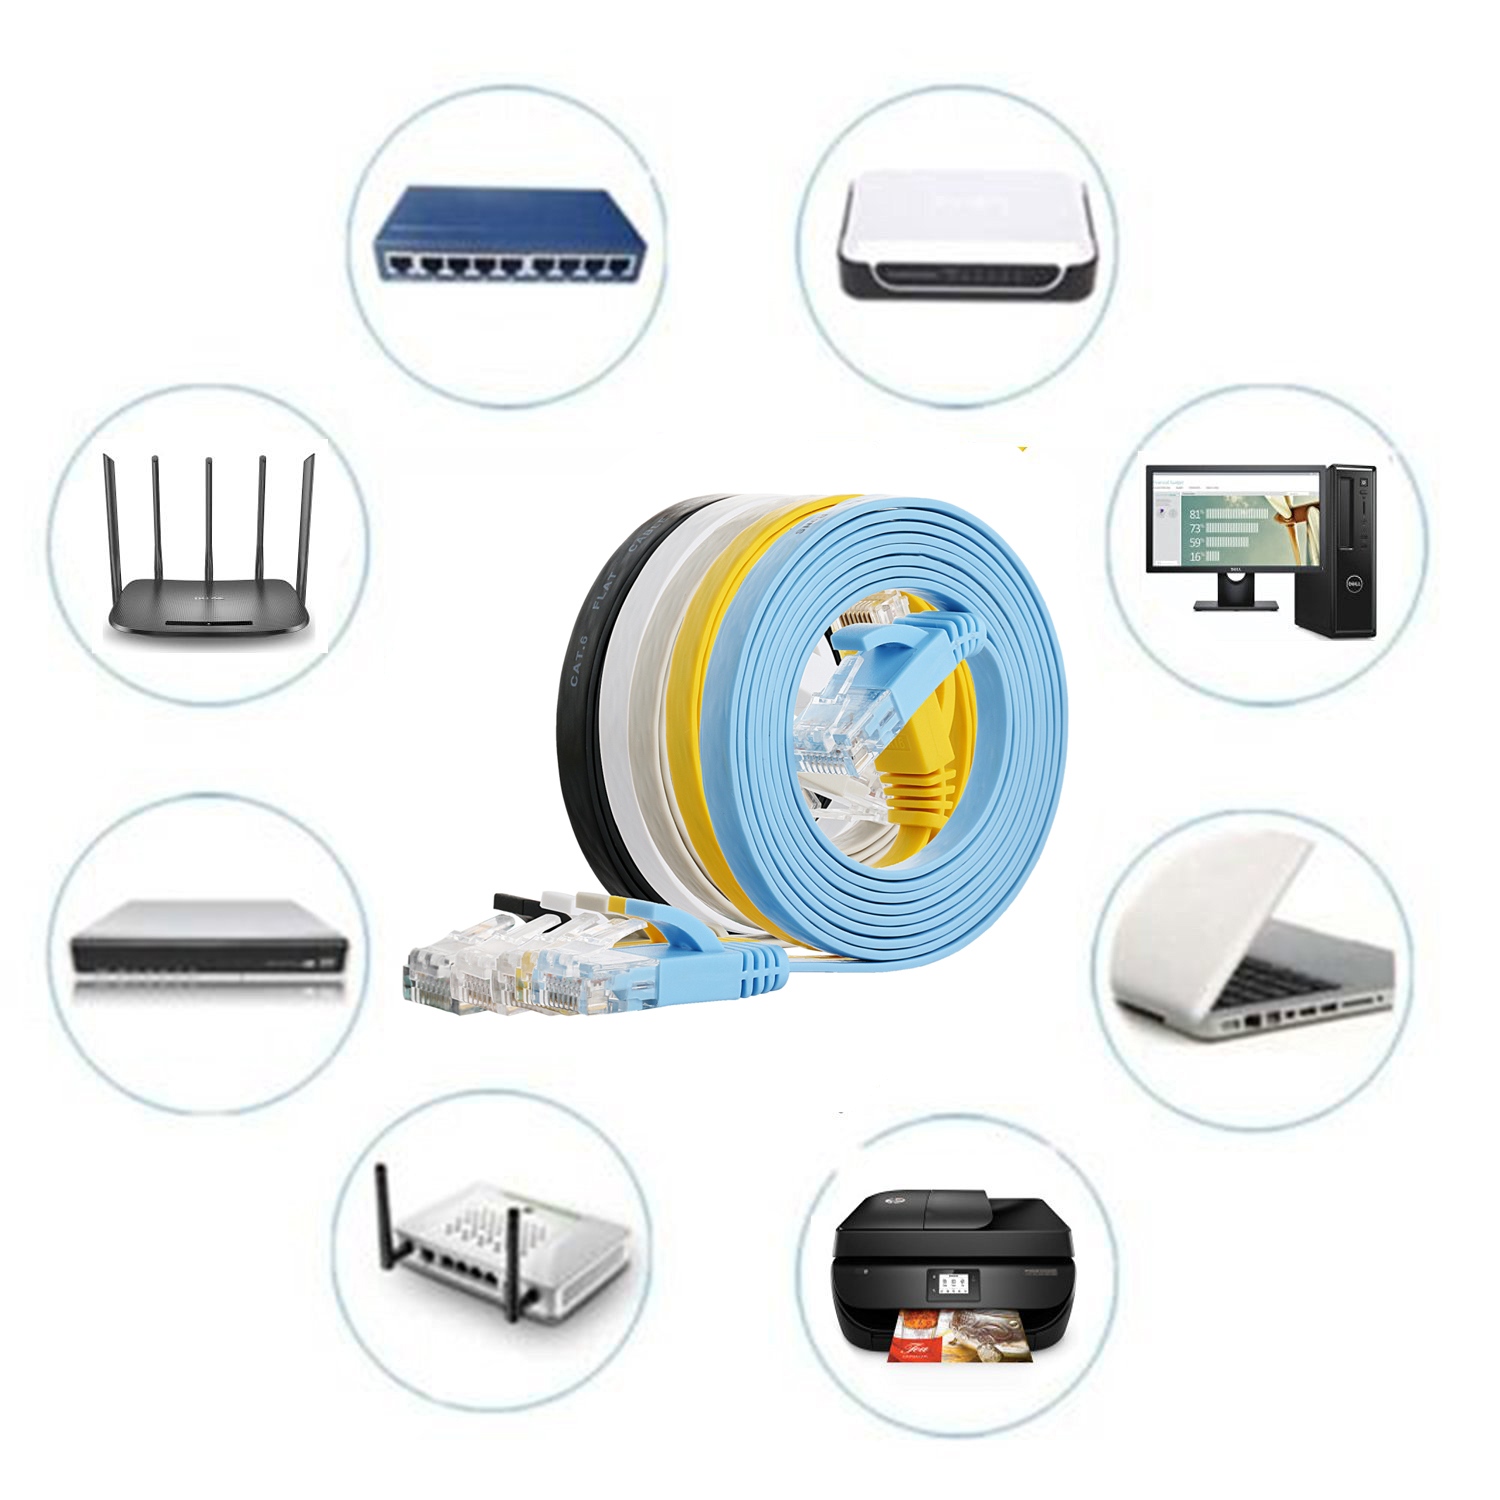 Cat5e Flat Cable Application